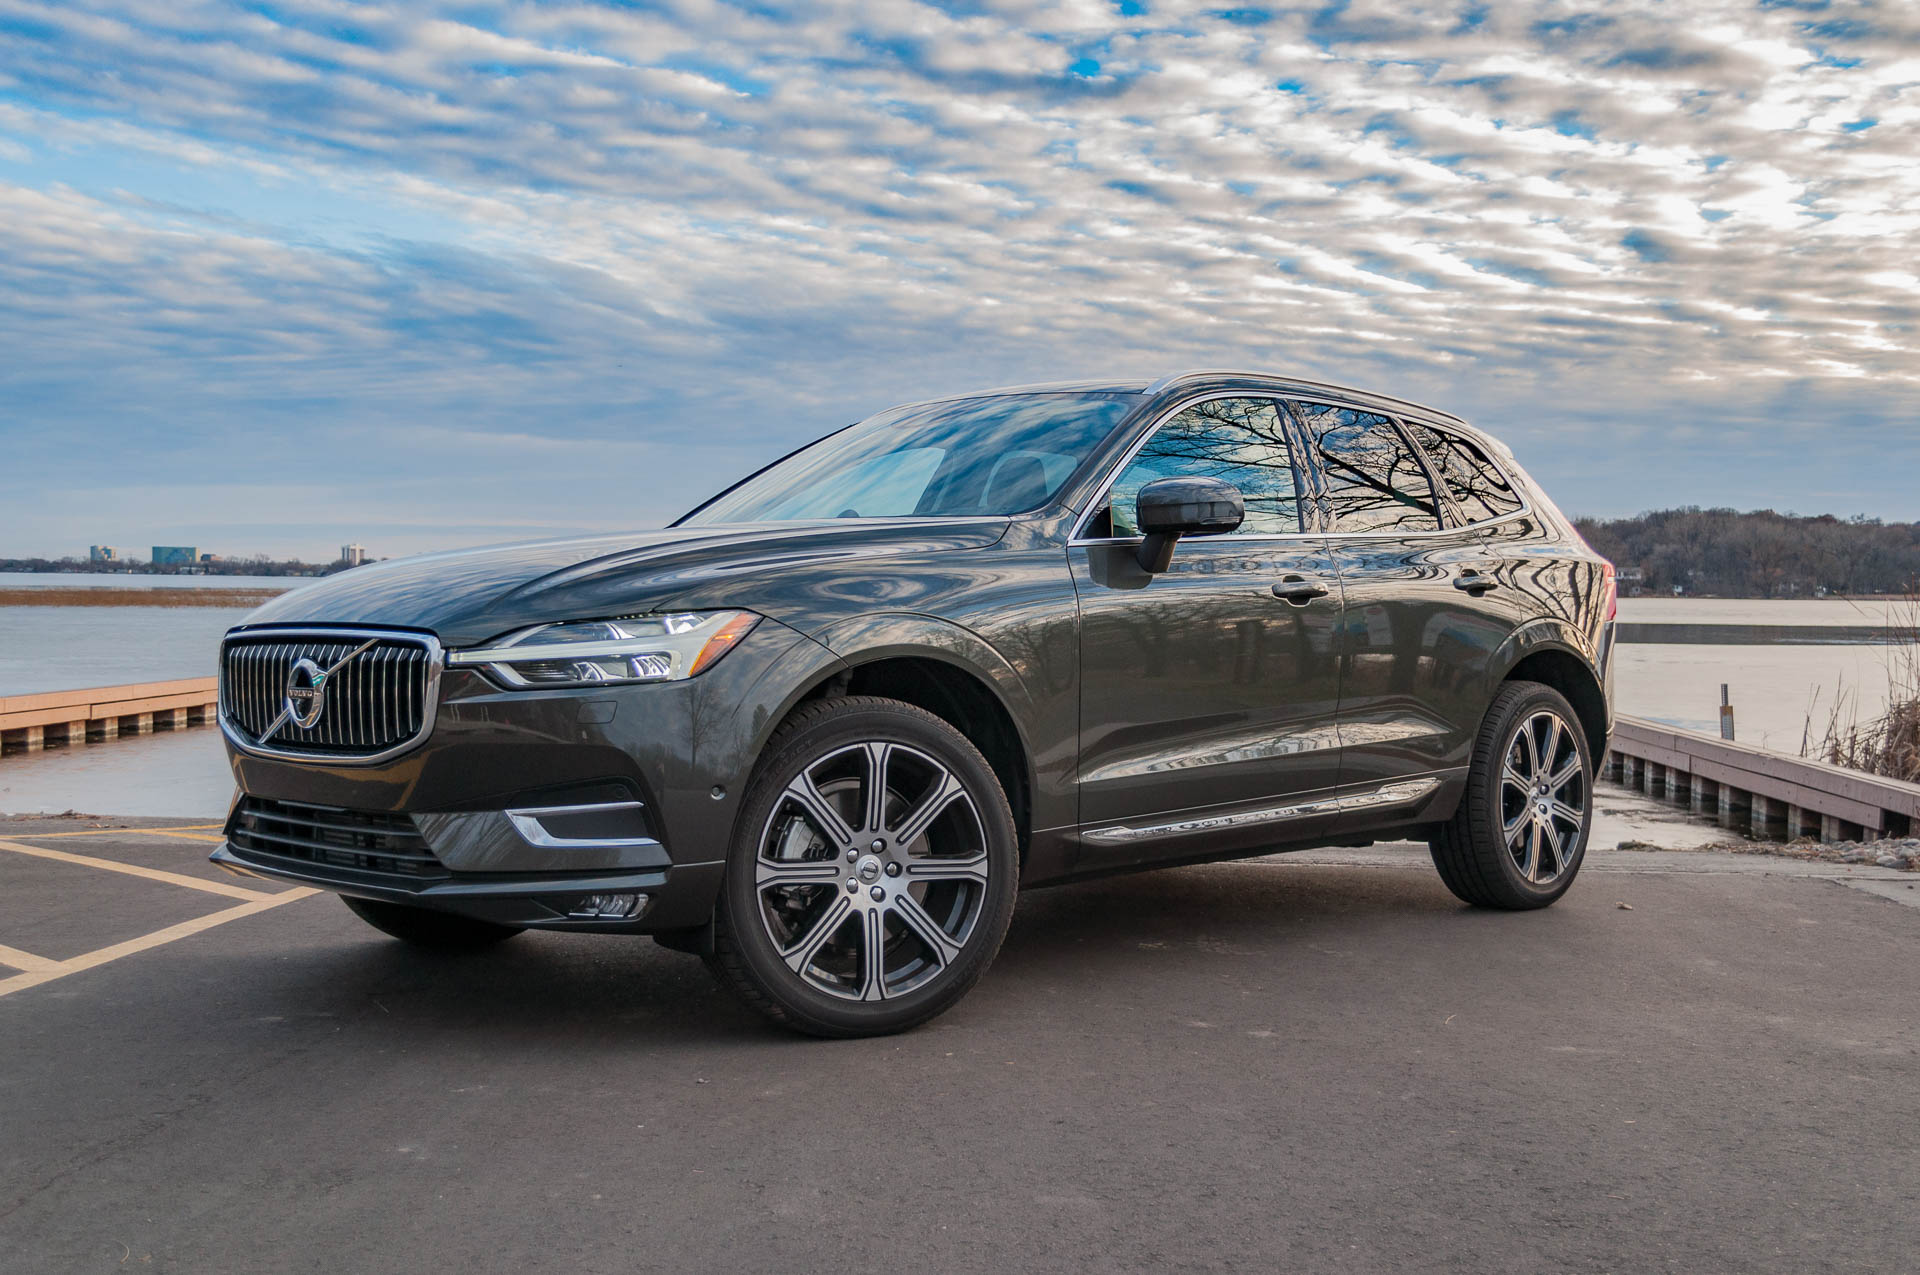 2018 Volvo Xc60 First Drive Review A Tidy Polished Package